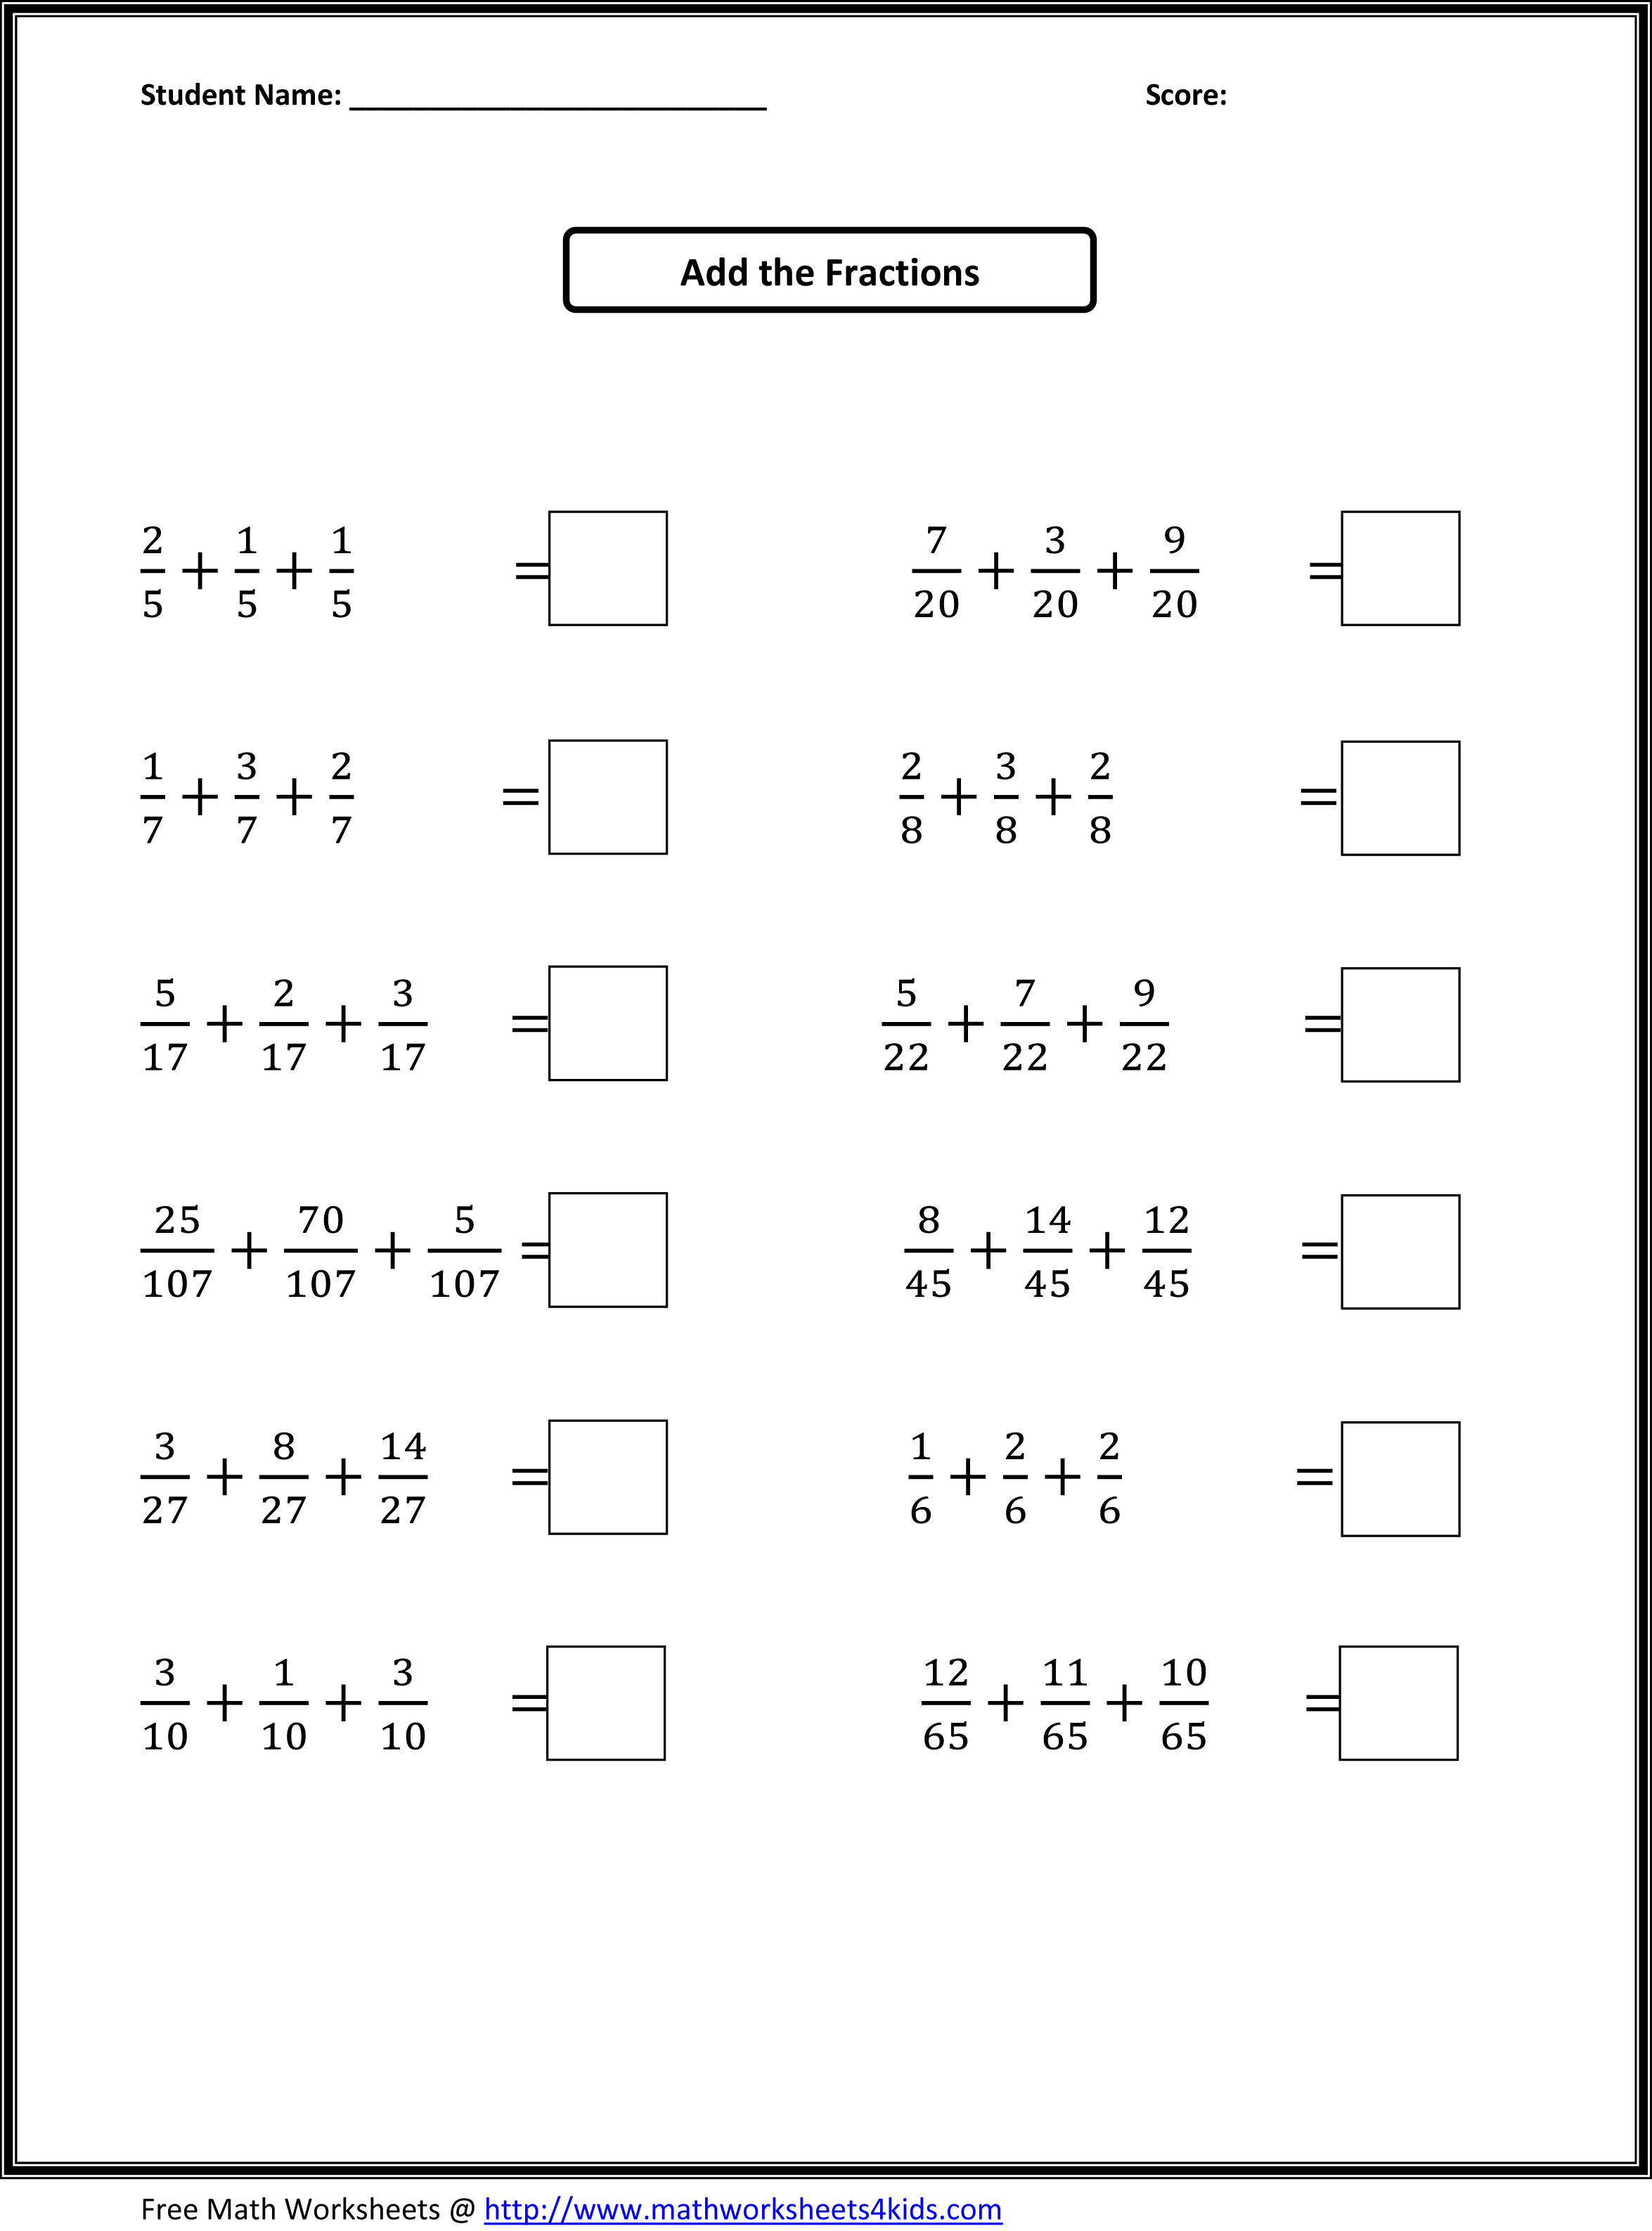 Printables Math Worksheets Fractions 4th grade math worksheets multiplying fractions kids activities addition of worksheets